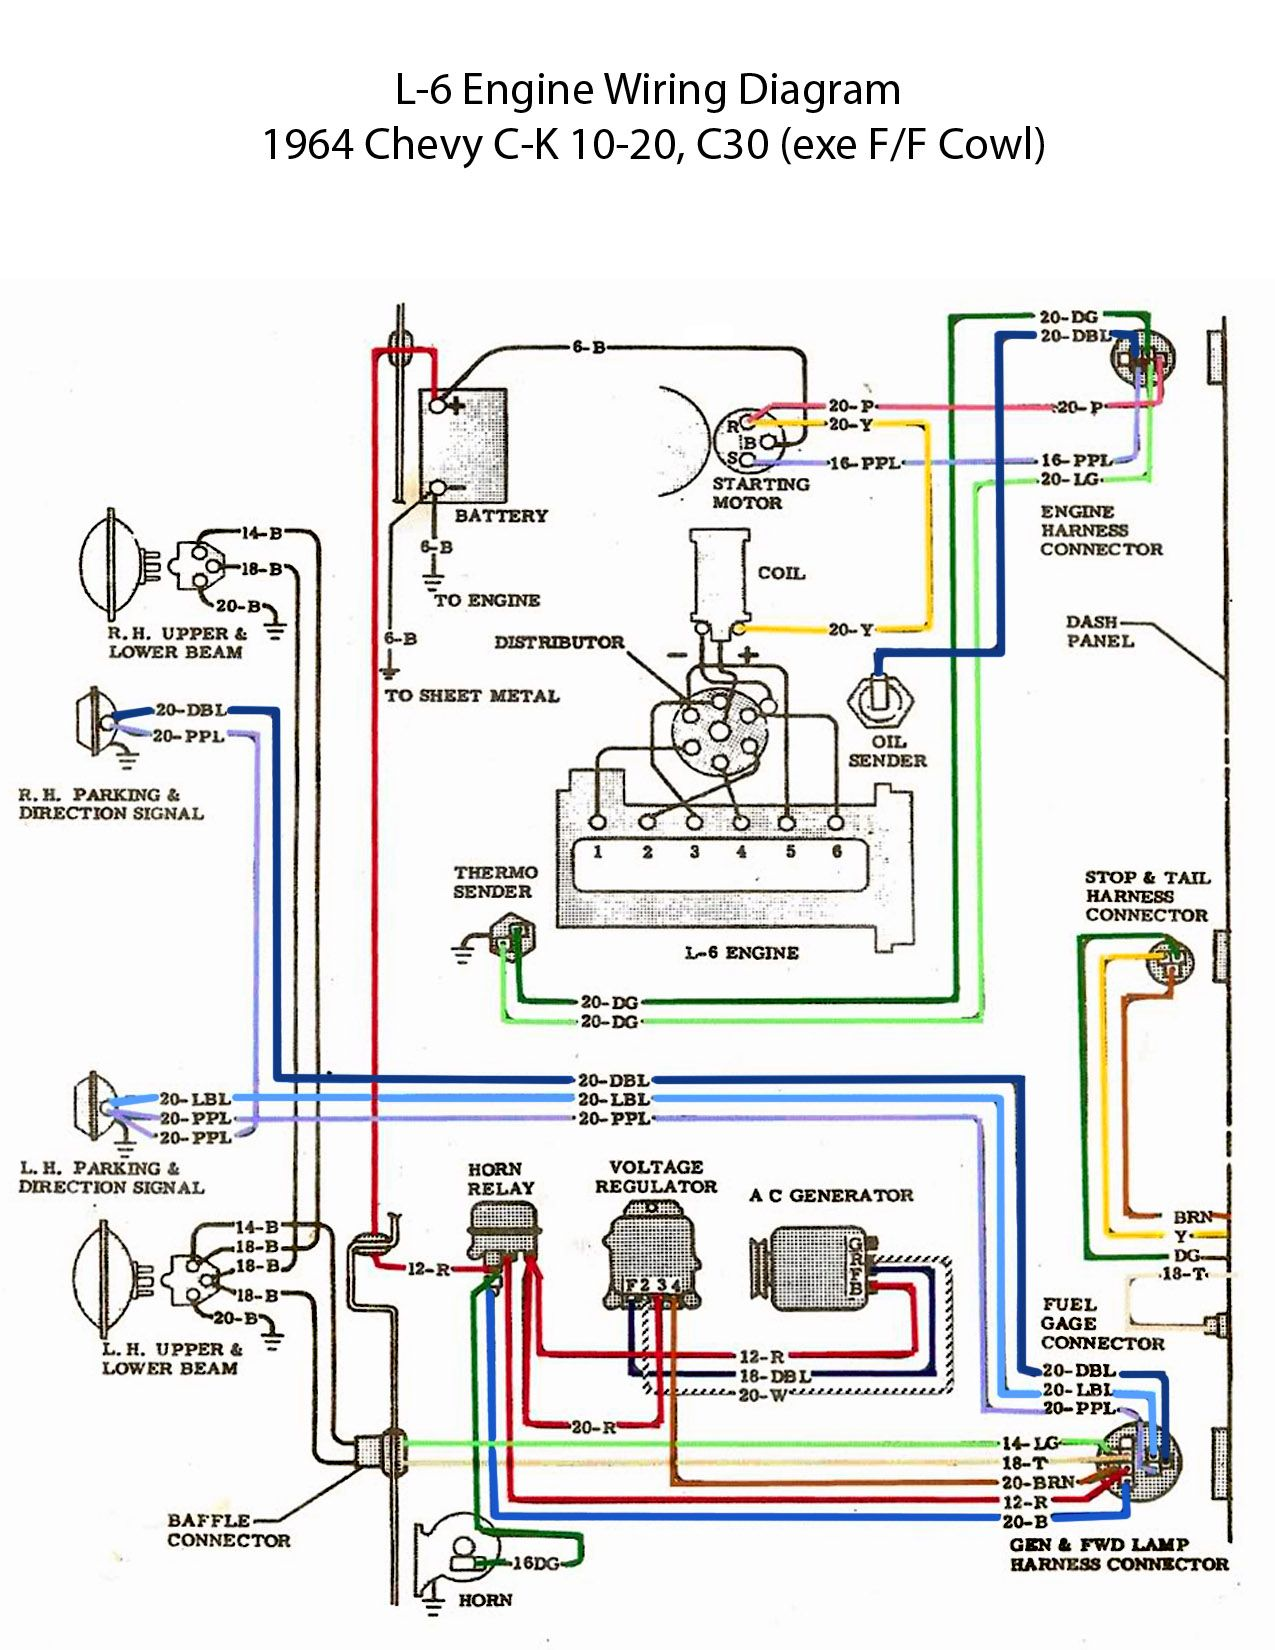 52f445b9f6cba1e2ba90979cb5234ed8 electric l 6 engine wiring diagram '60s chevy c10 wiring  at creativeand.co